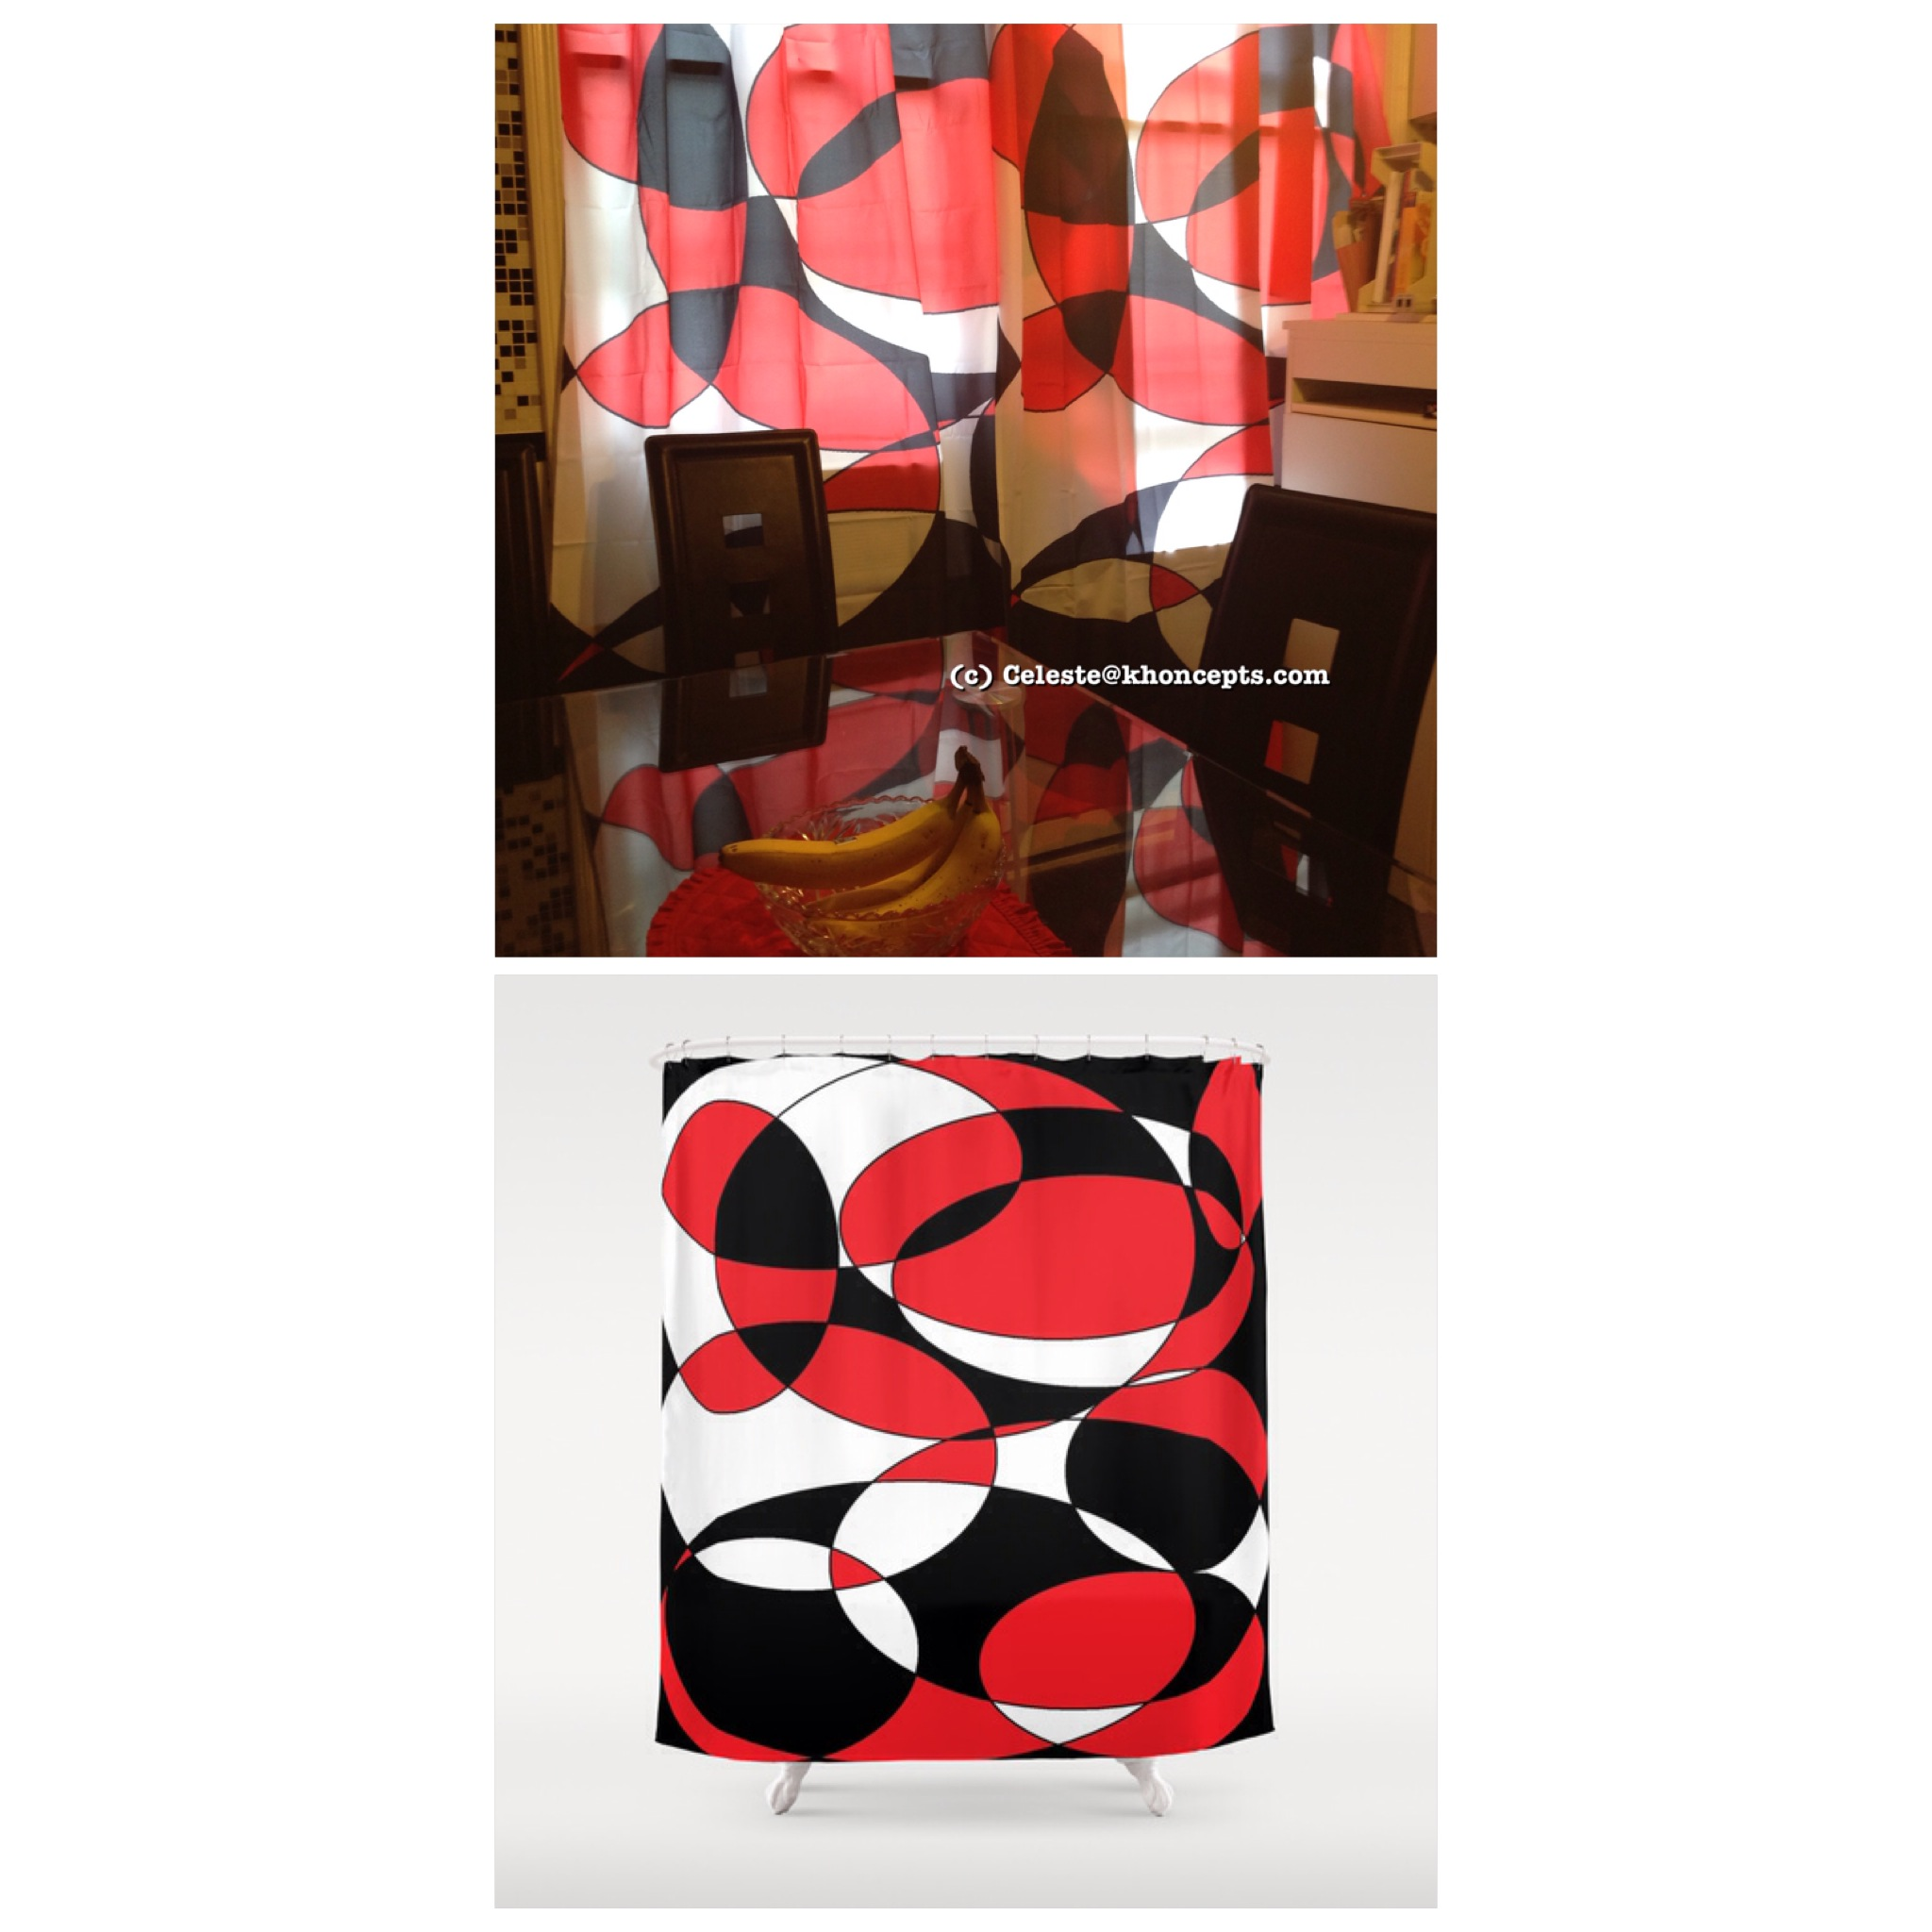 Shower Curtains Or Window Curtains Gorgeous Black, White And Red ...